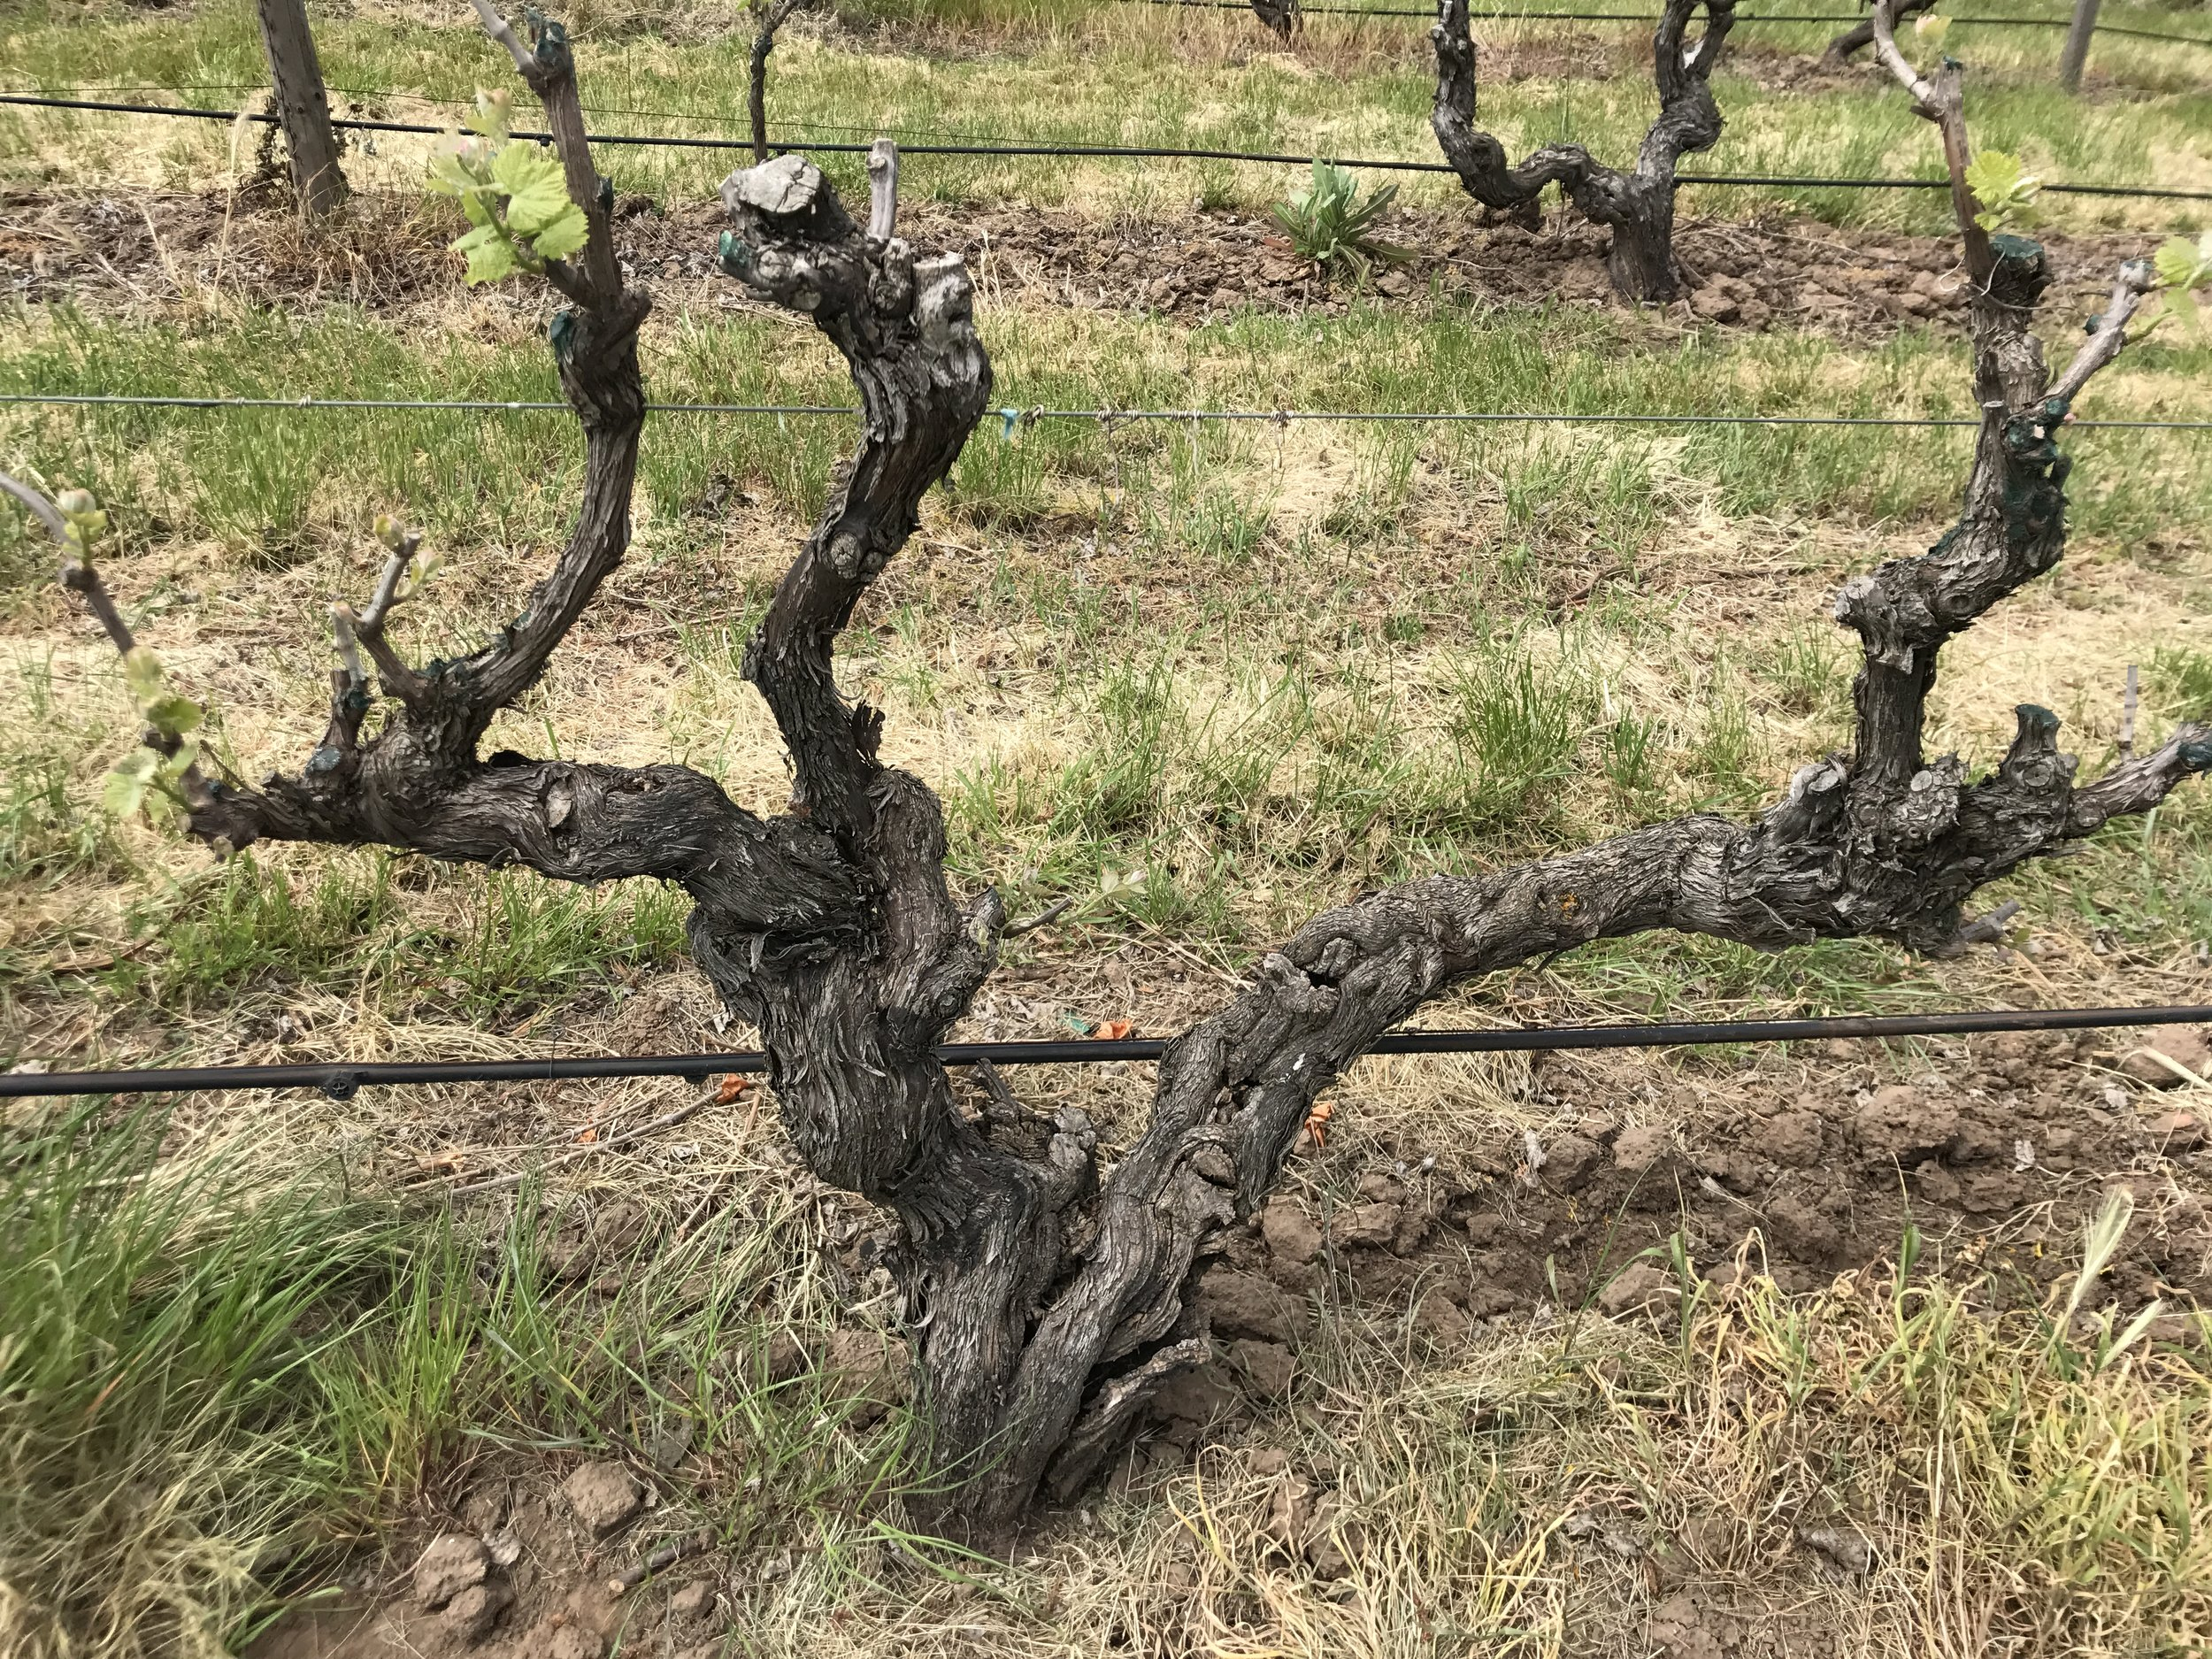 The old Shiraz at the home block in stone well with the first signs of budbirst